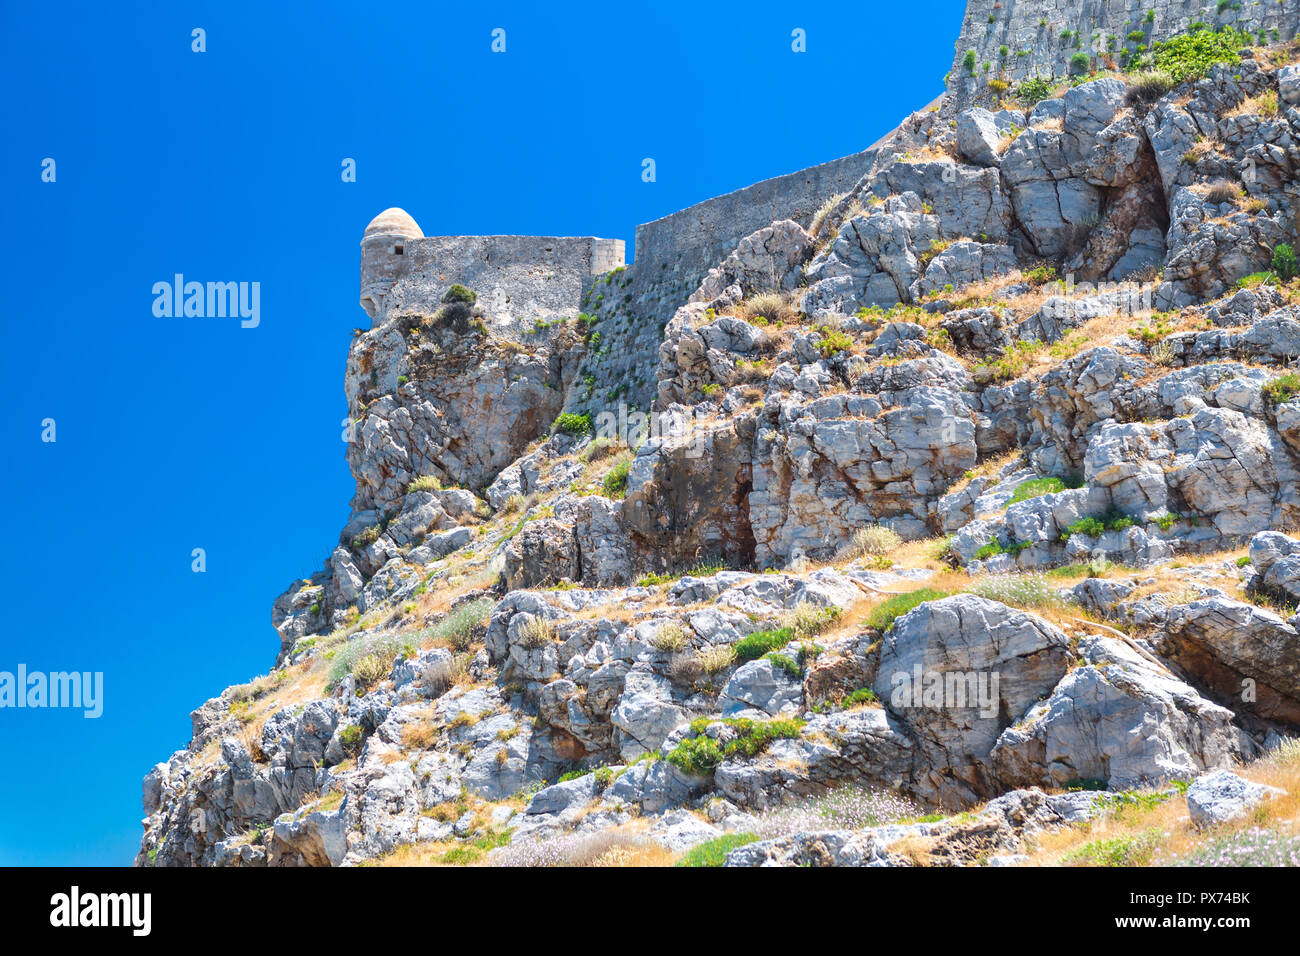 The venetian fortress of Fortezza on the hill at the old town of Rethimno, Crete, Greece. Stock Photo